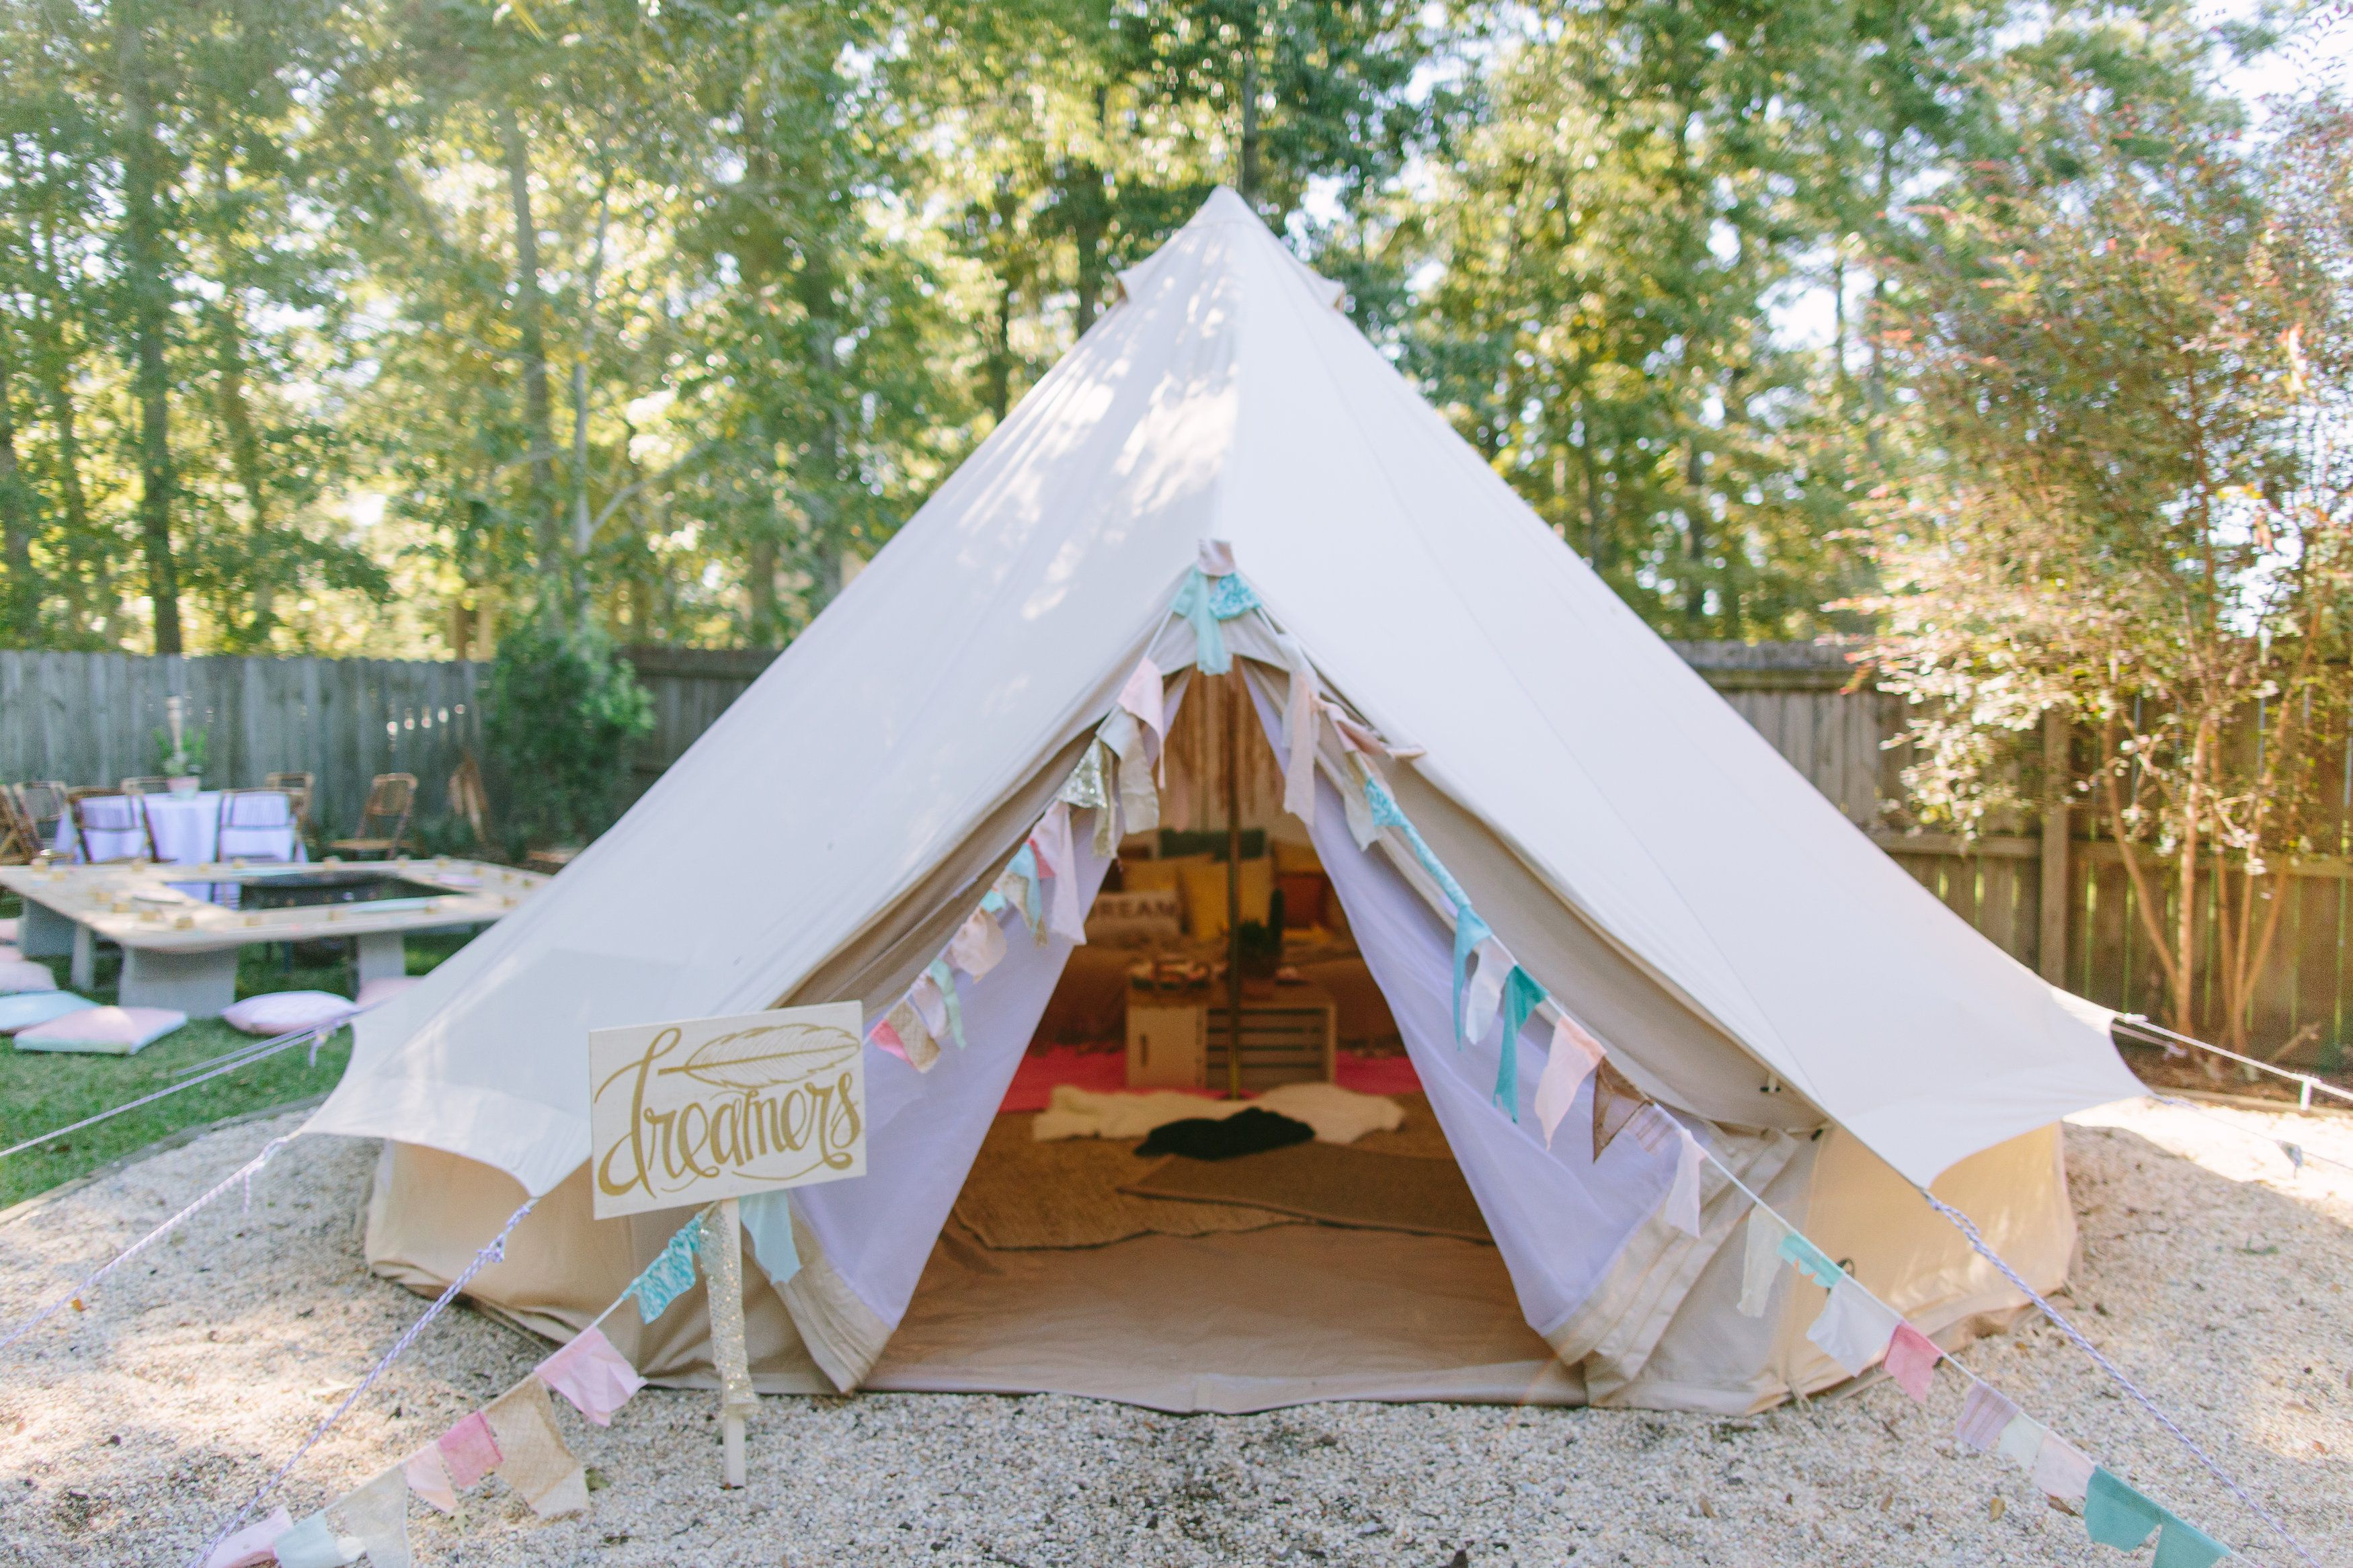 vintage tent easy up - Google Search & vintage tent easy up - Google Search | RVing Dreams | Pinterest ...